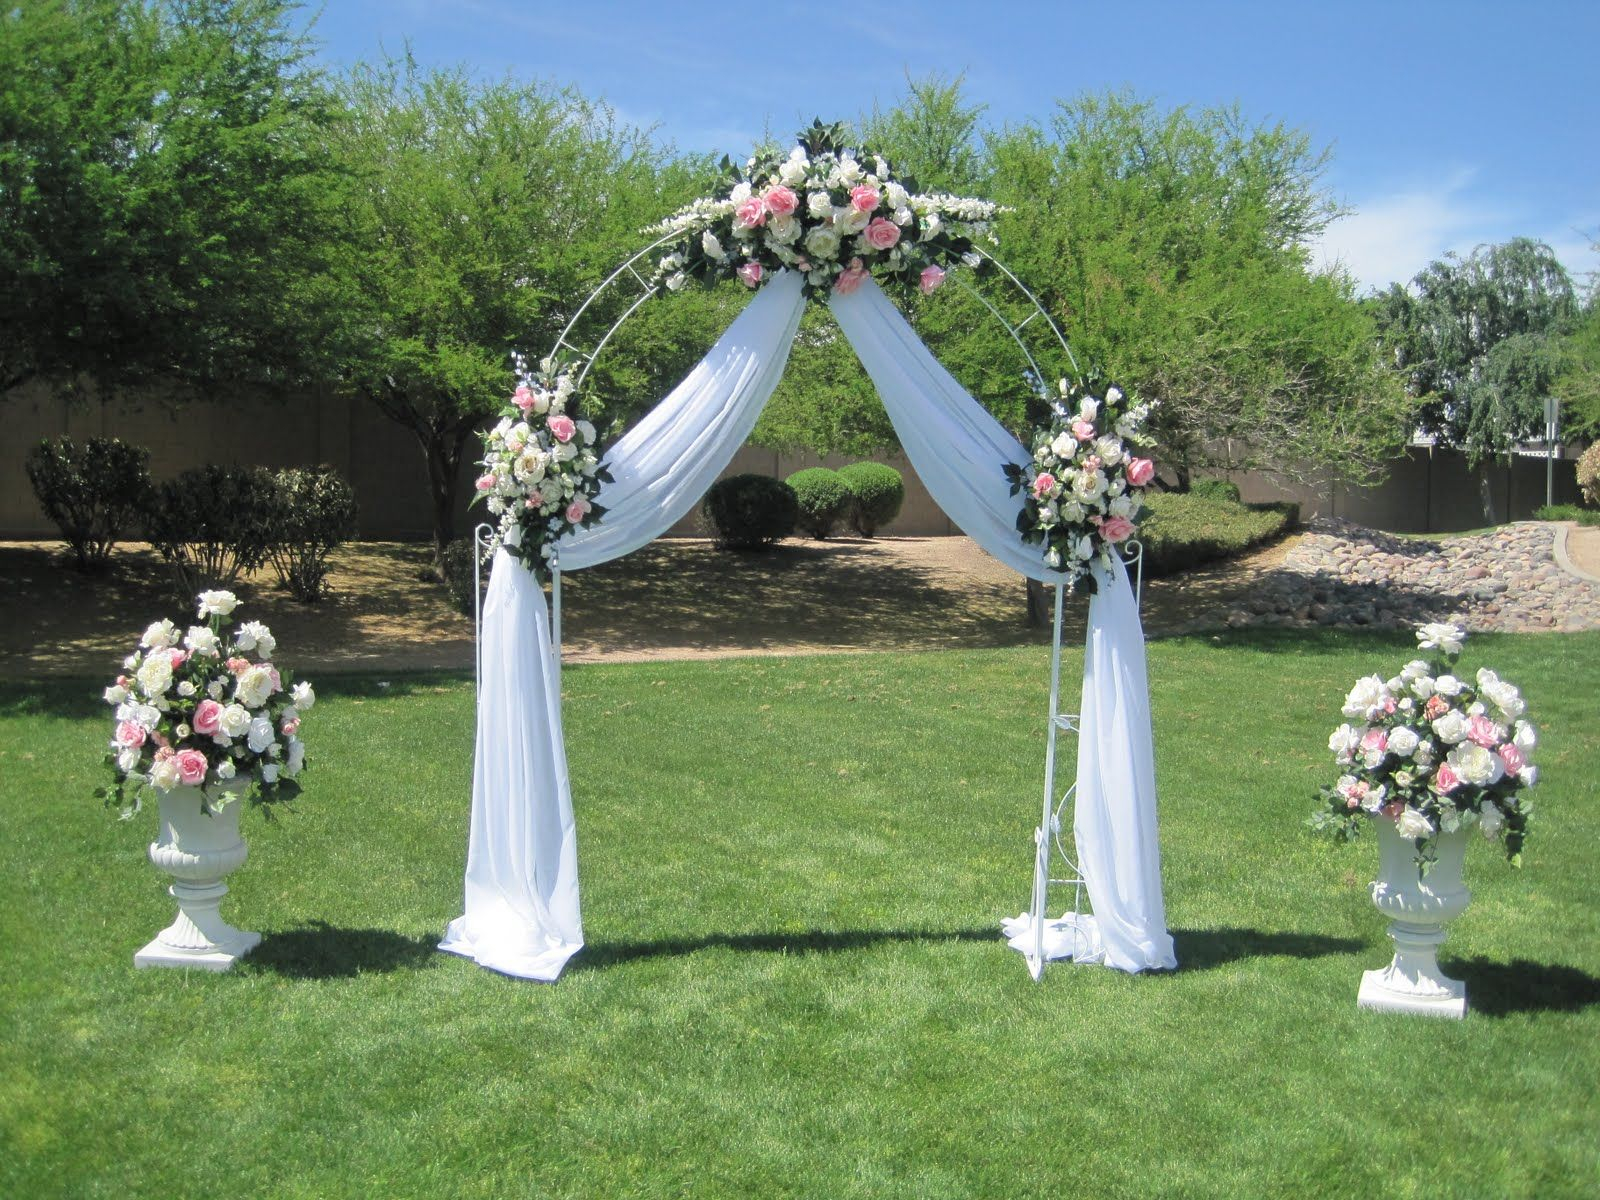 Wedding gazebo decorating ideas white wrought iron arch for Decorating for outdoor wedding